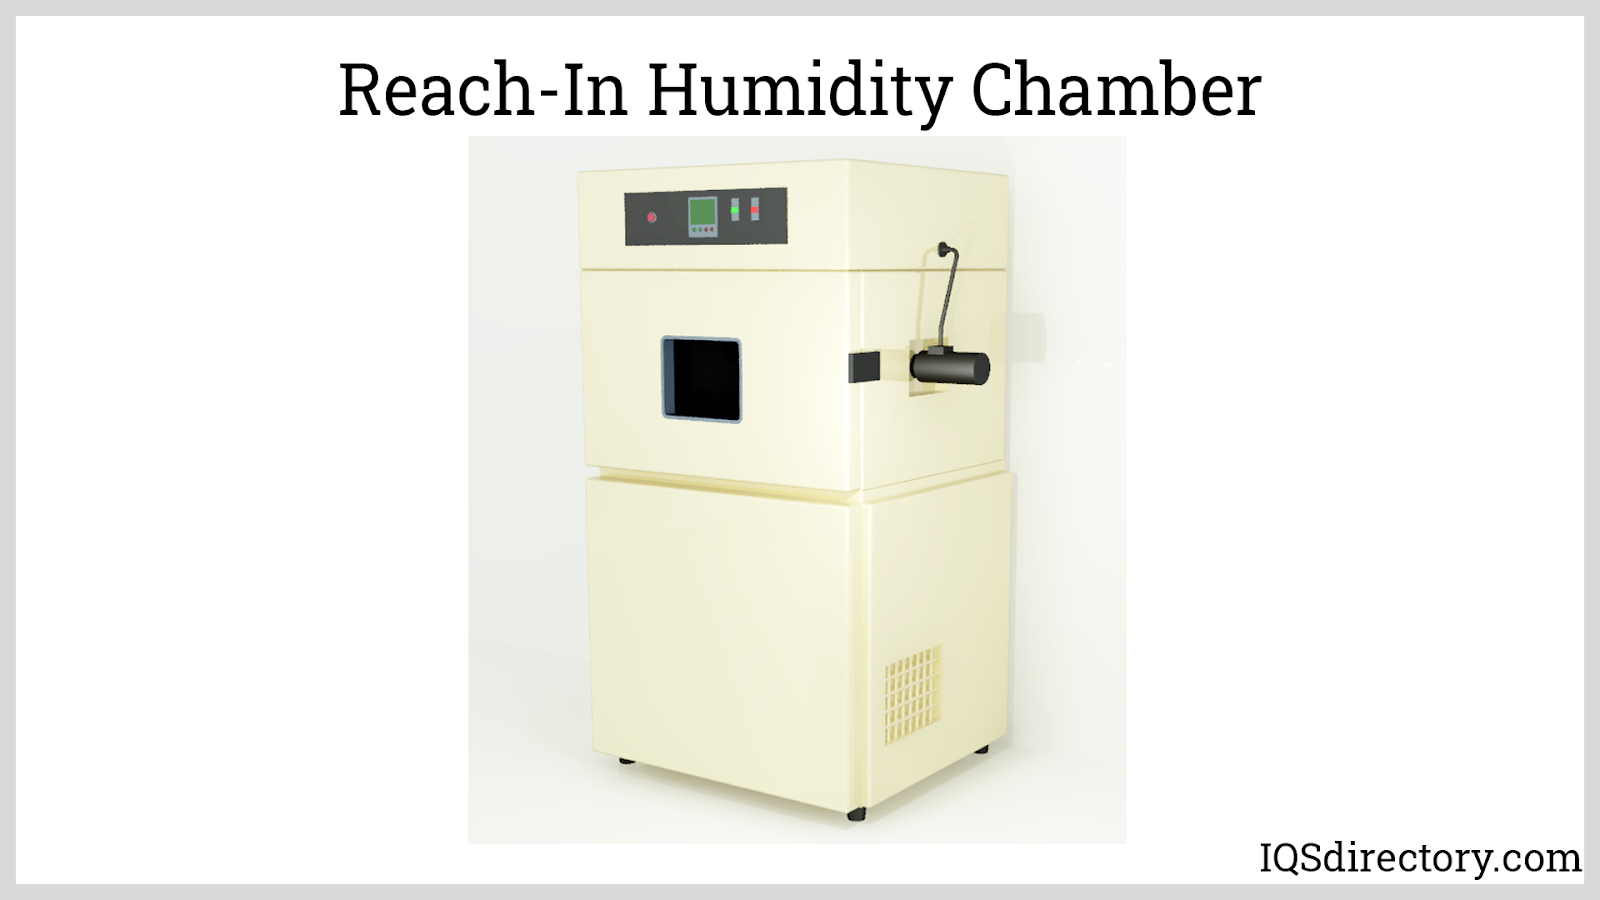 Reach-In Humidity Chamber